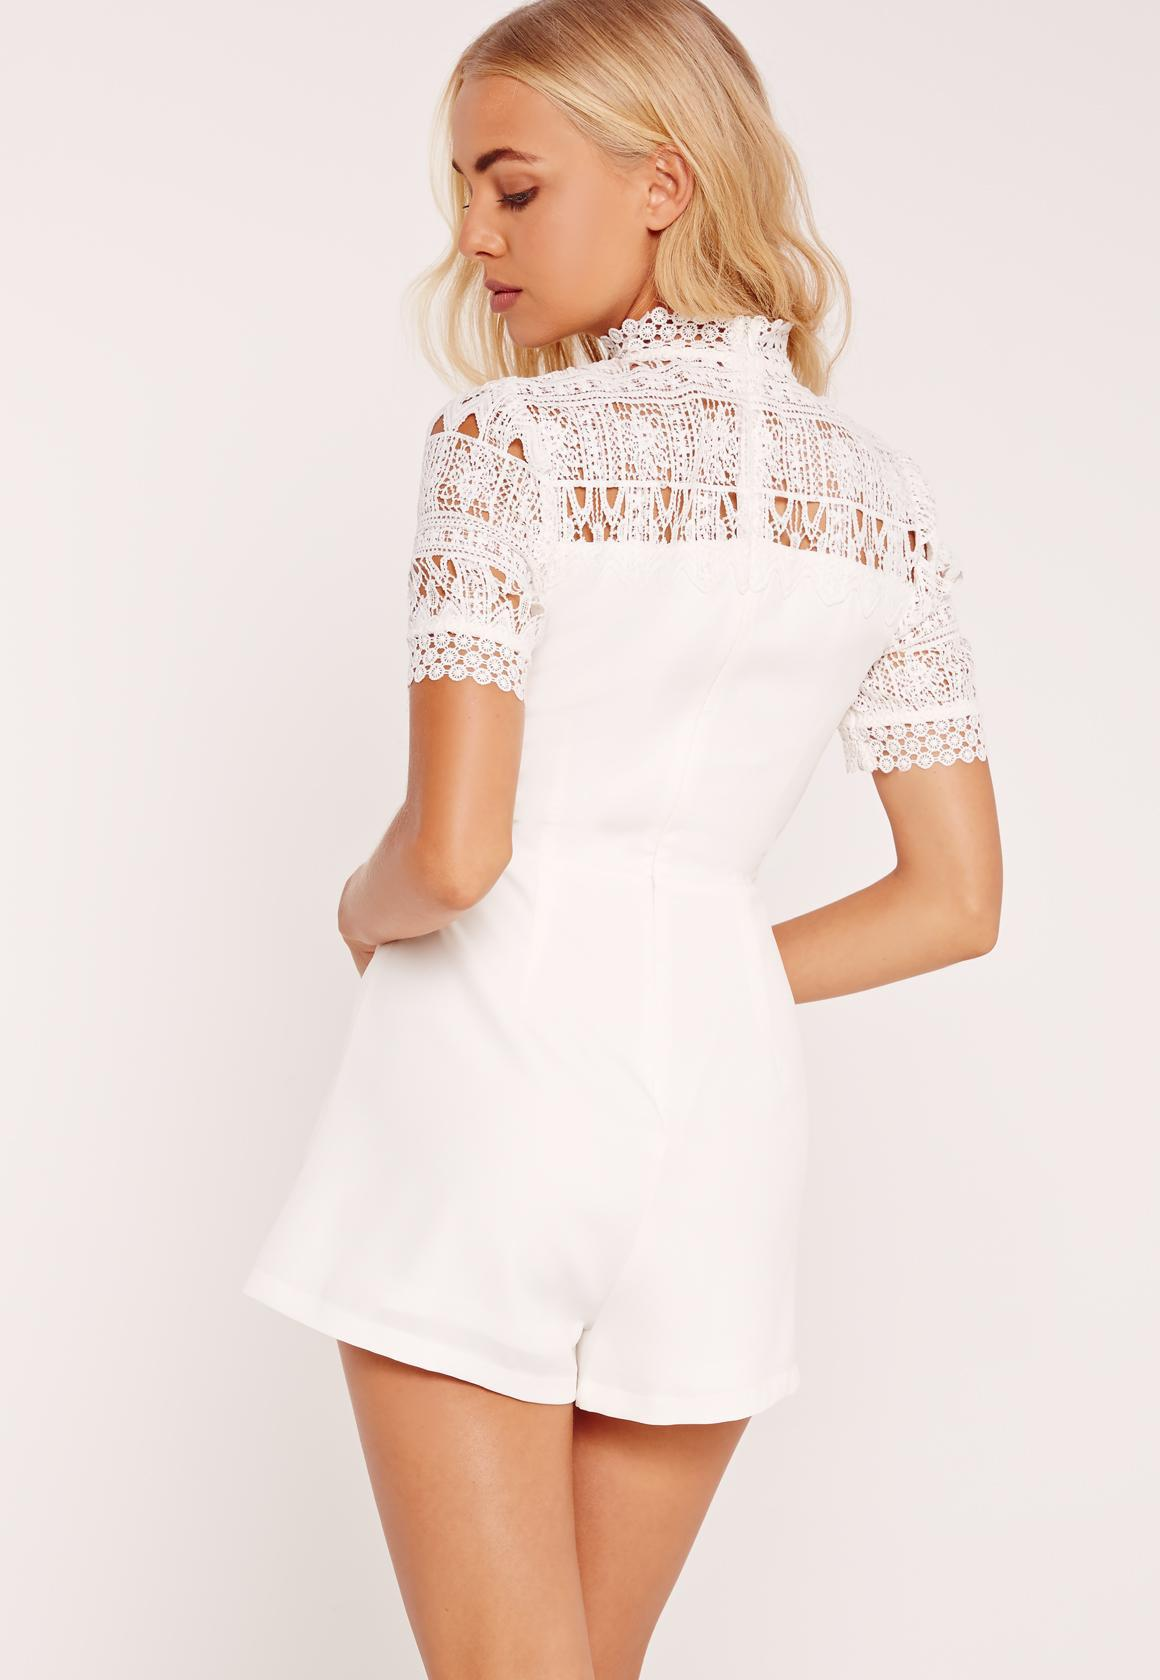 c91c162f1816 Gallery. Women s Off The Shoulder Rompers Women s Lace Jumpsuits ...